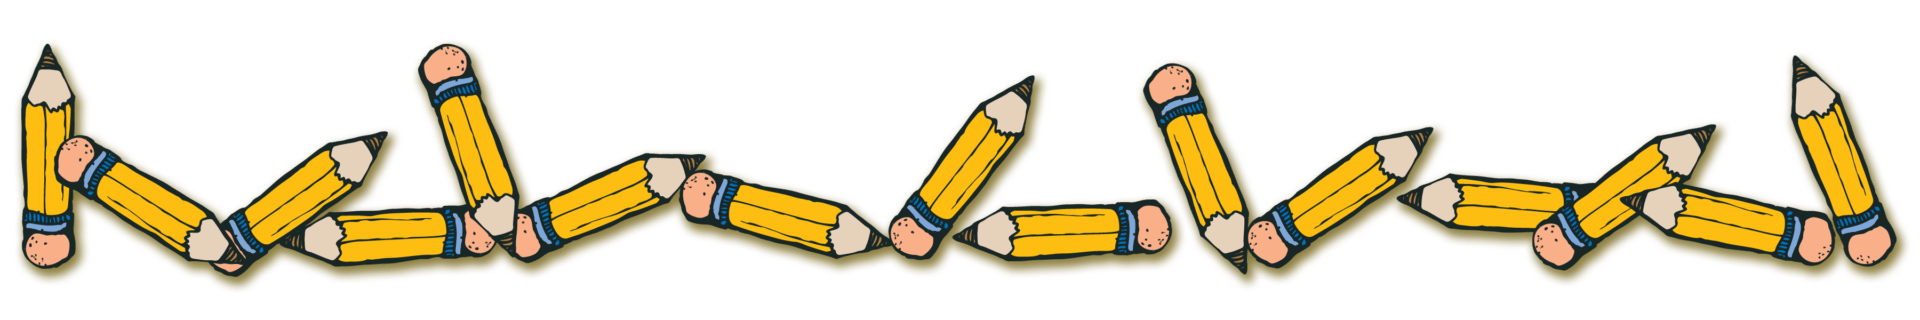 Clipart pencil school supply. Back past military assistance